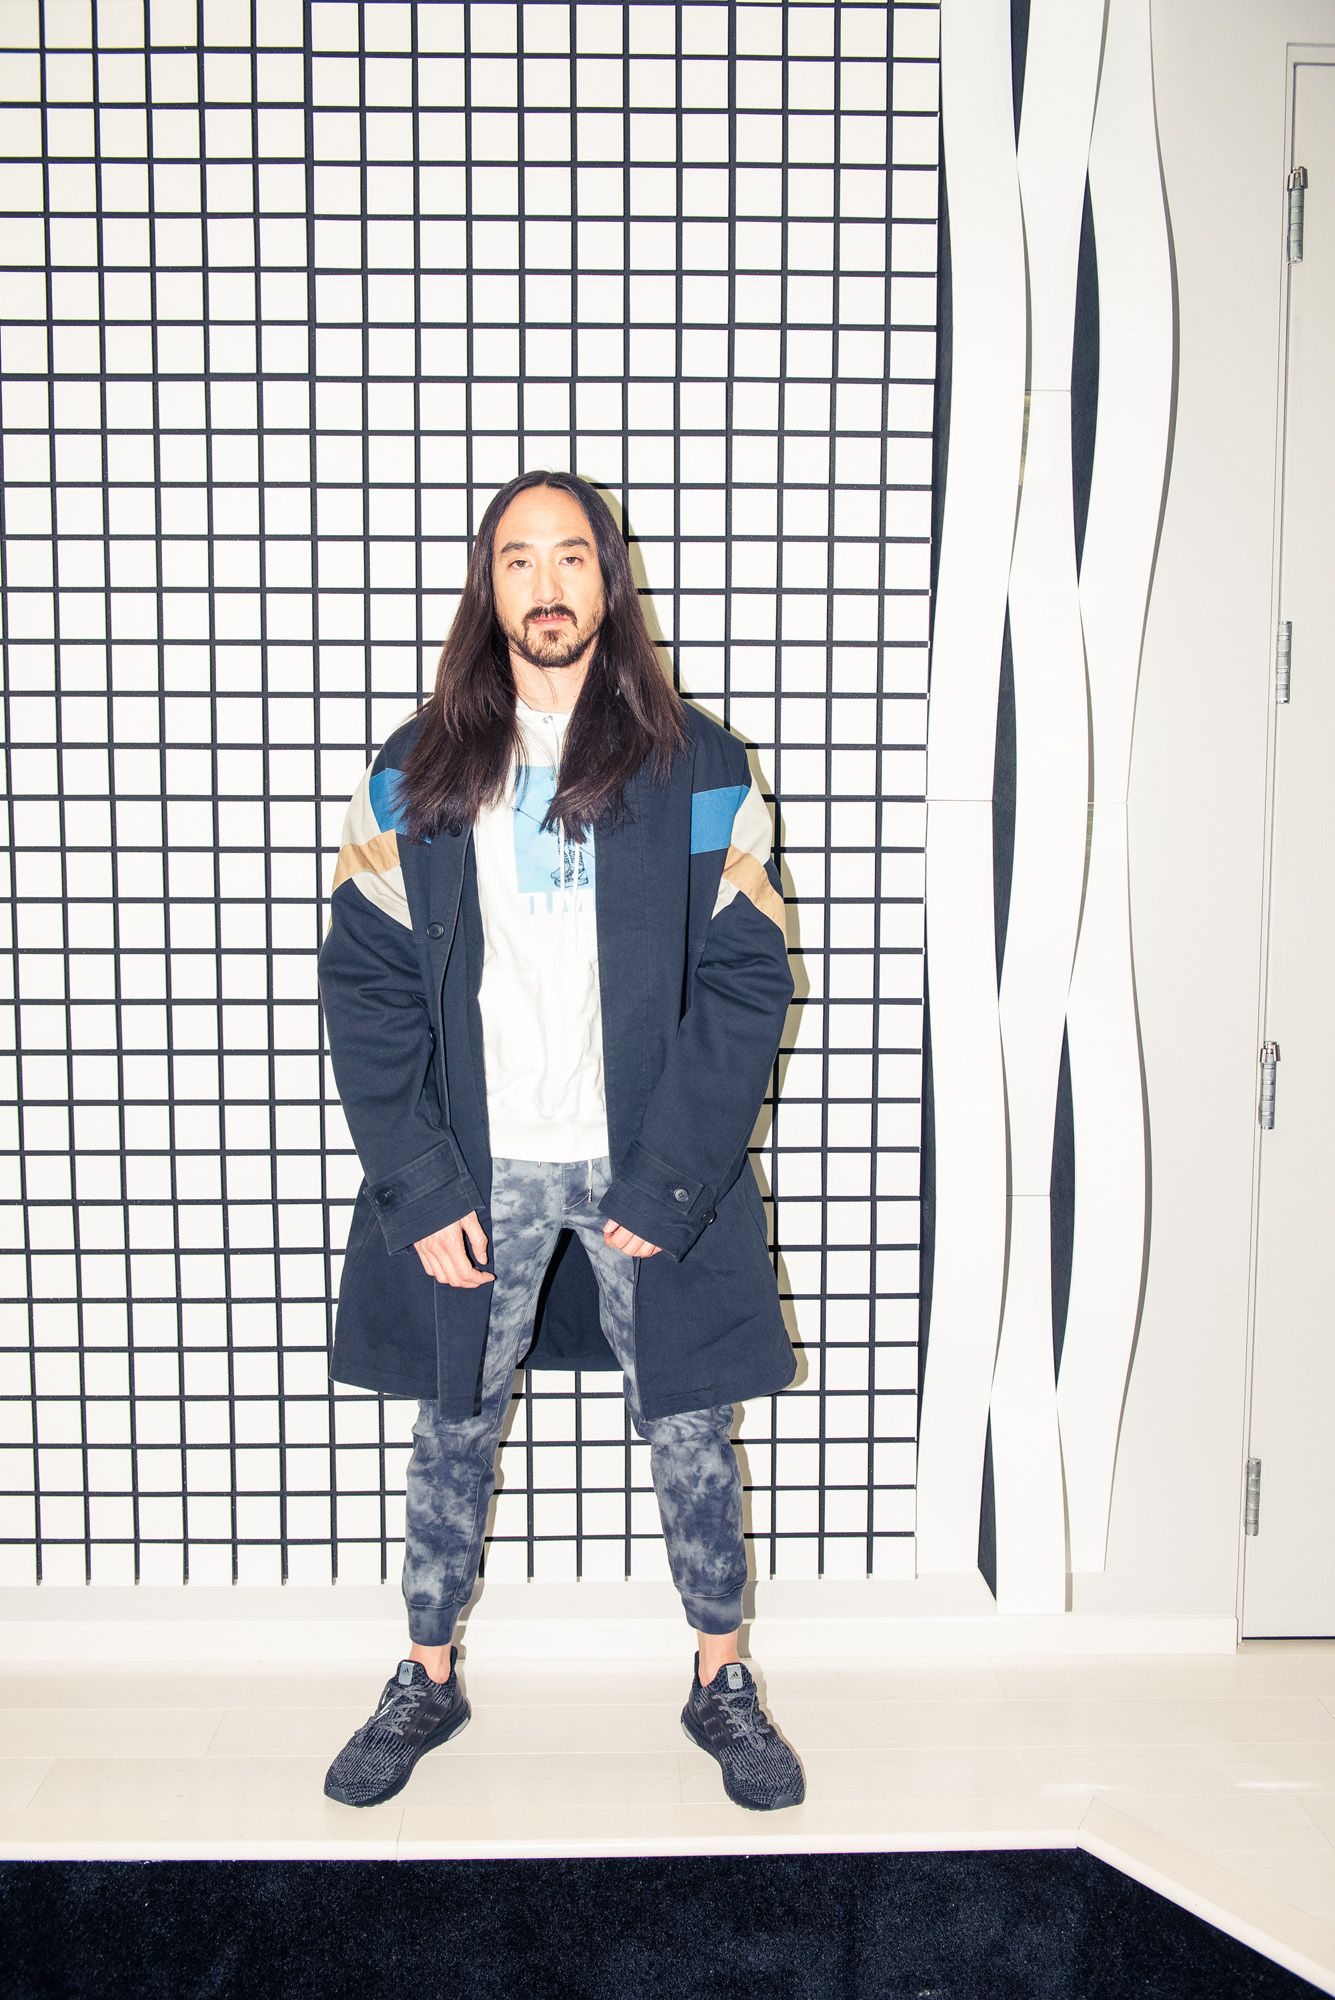 Steve Aoki Has the World's Largest Collection of Adidas x Jeremy Scott